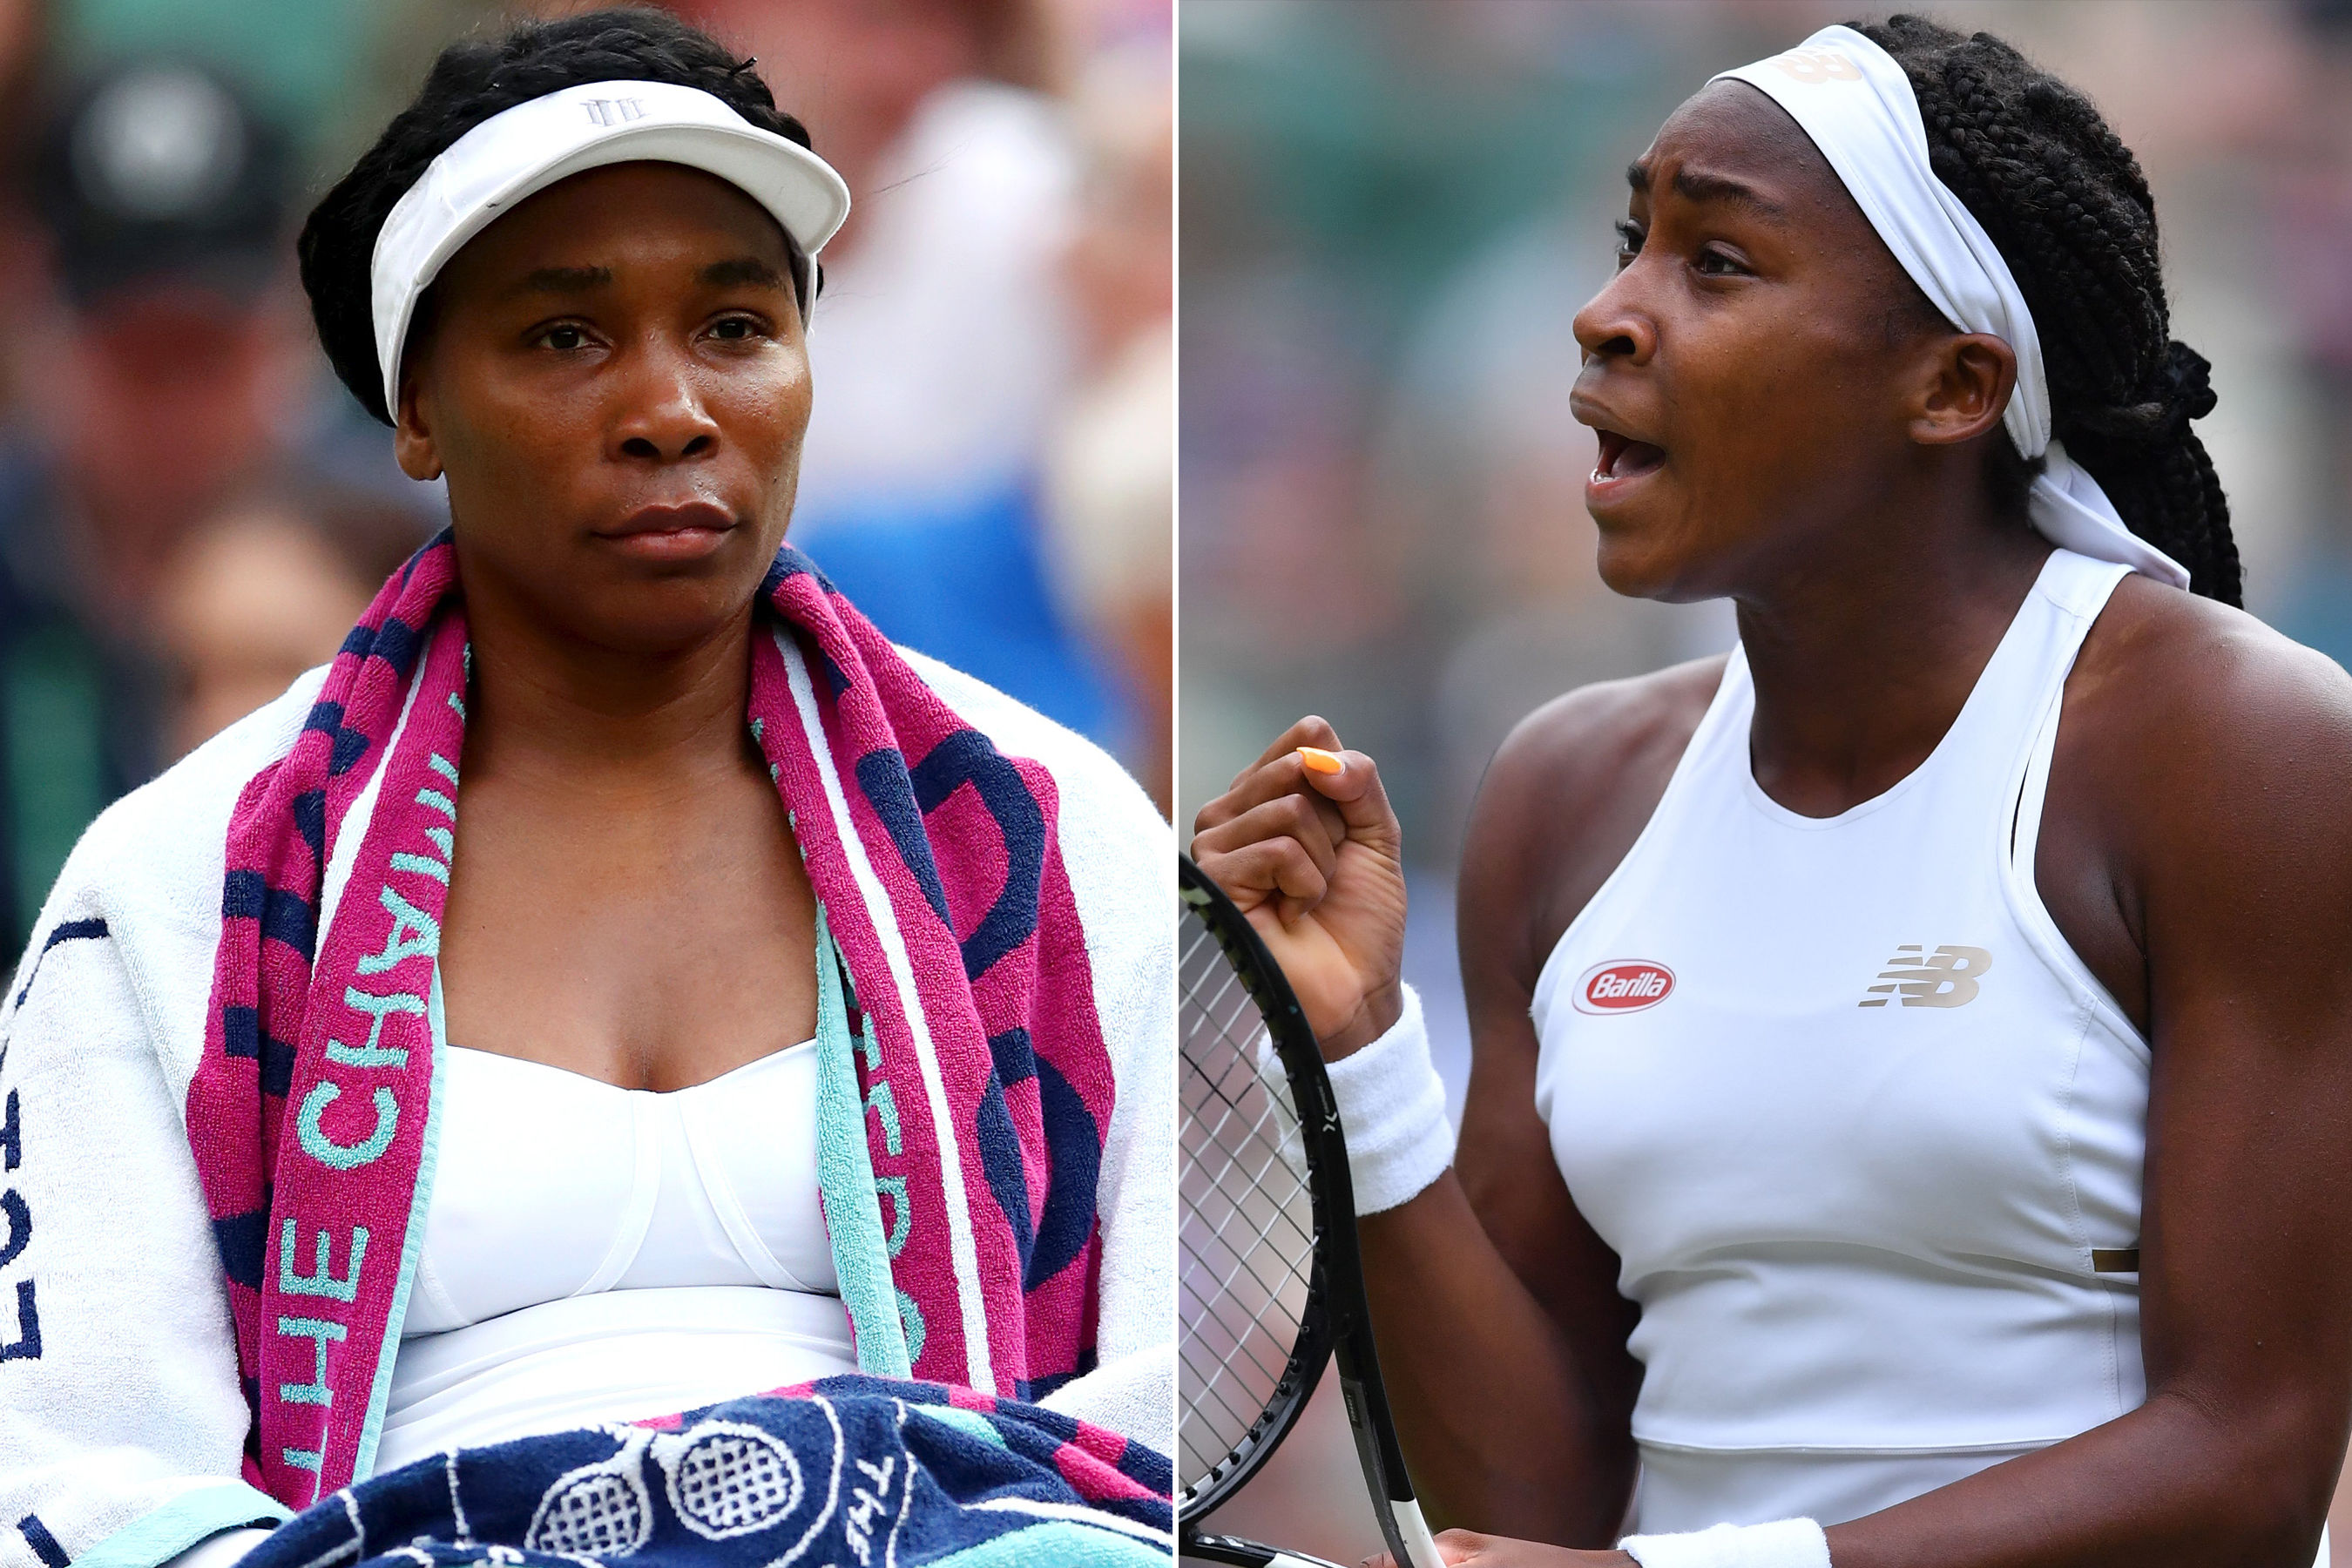 15-Year-Old Wimbledon Qualifier from Florida Defeats Venus Williams in Shocking Debut